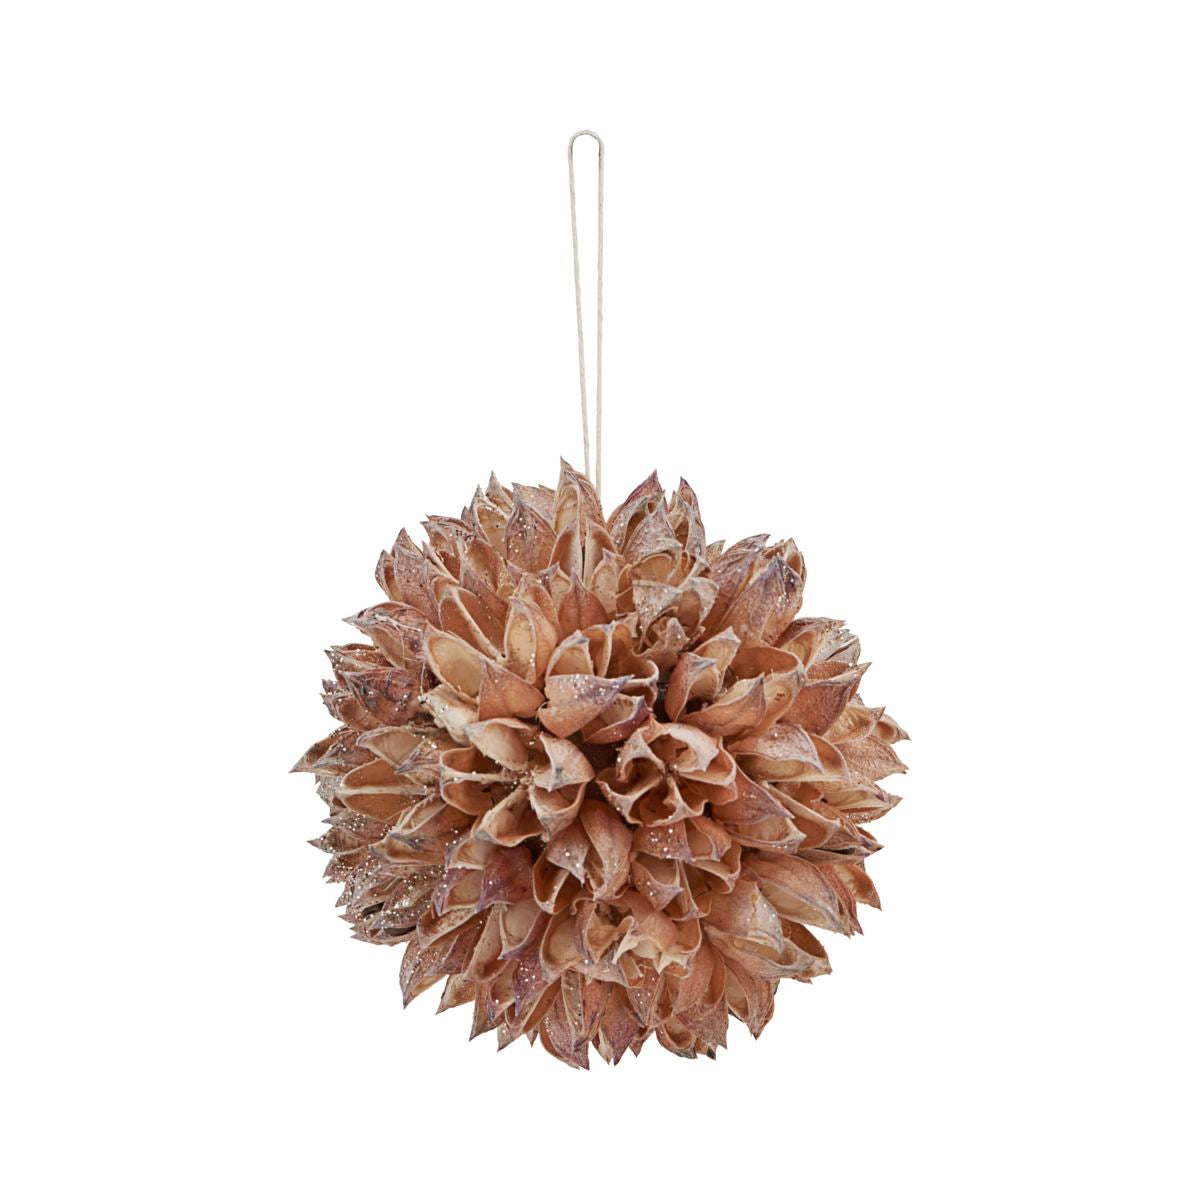 Coming Soon! Christmas Natural Flower Seeds Ornament